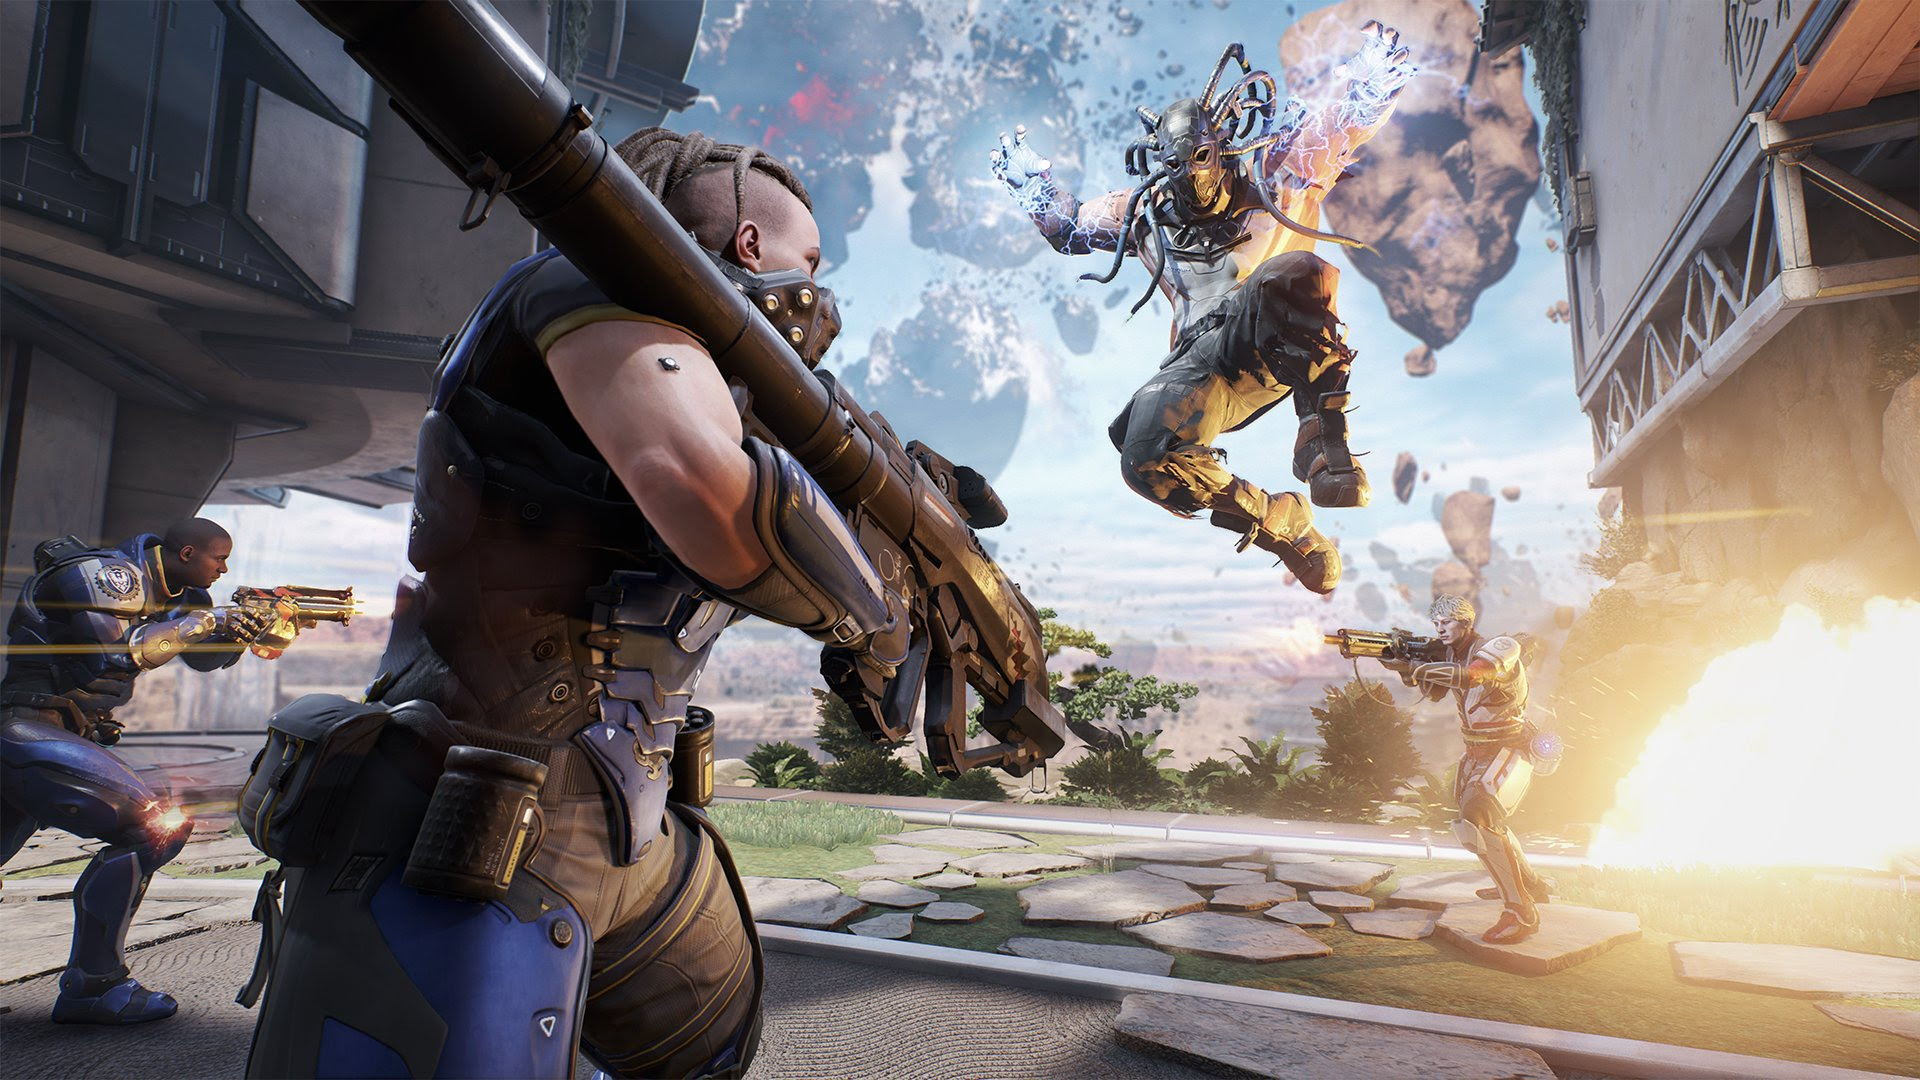 PSA: LawBreakers suffers from stuttering on PS4 screenshot